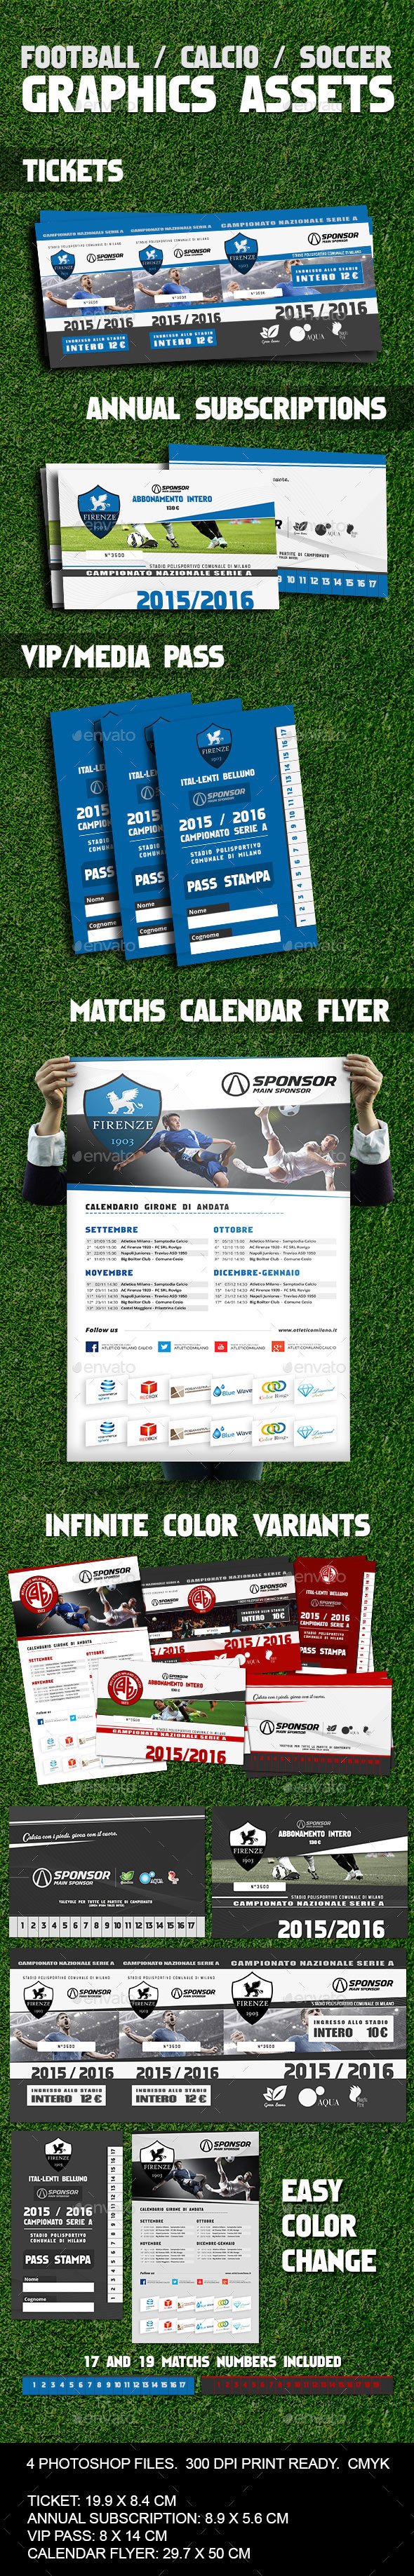 GraphicRiver Soccer Calcio Football Image Assets 9819528